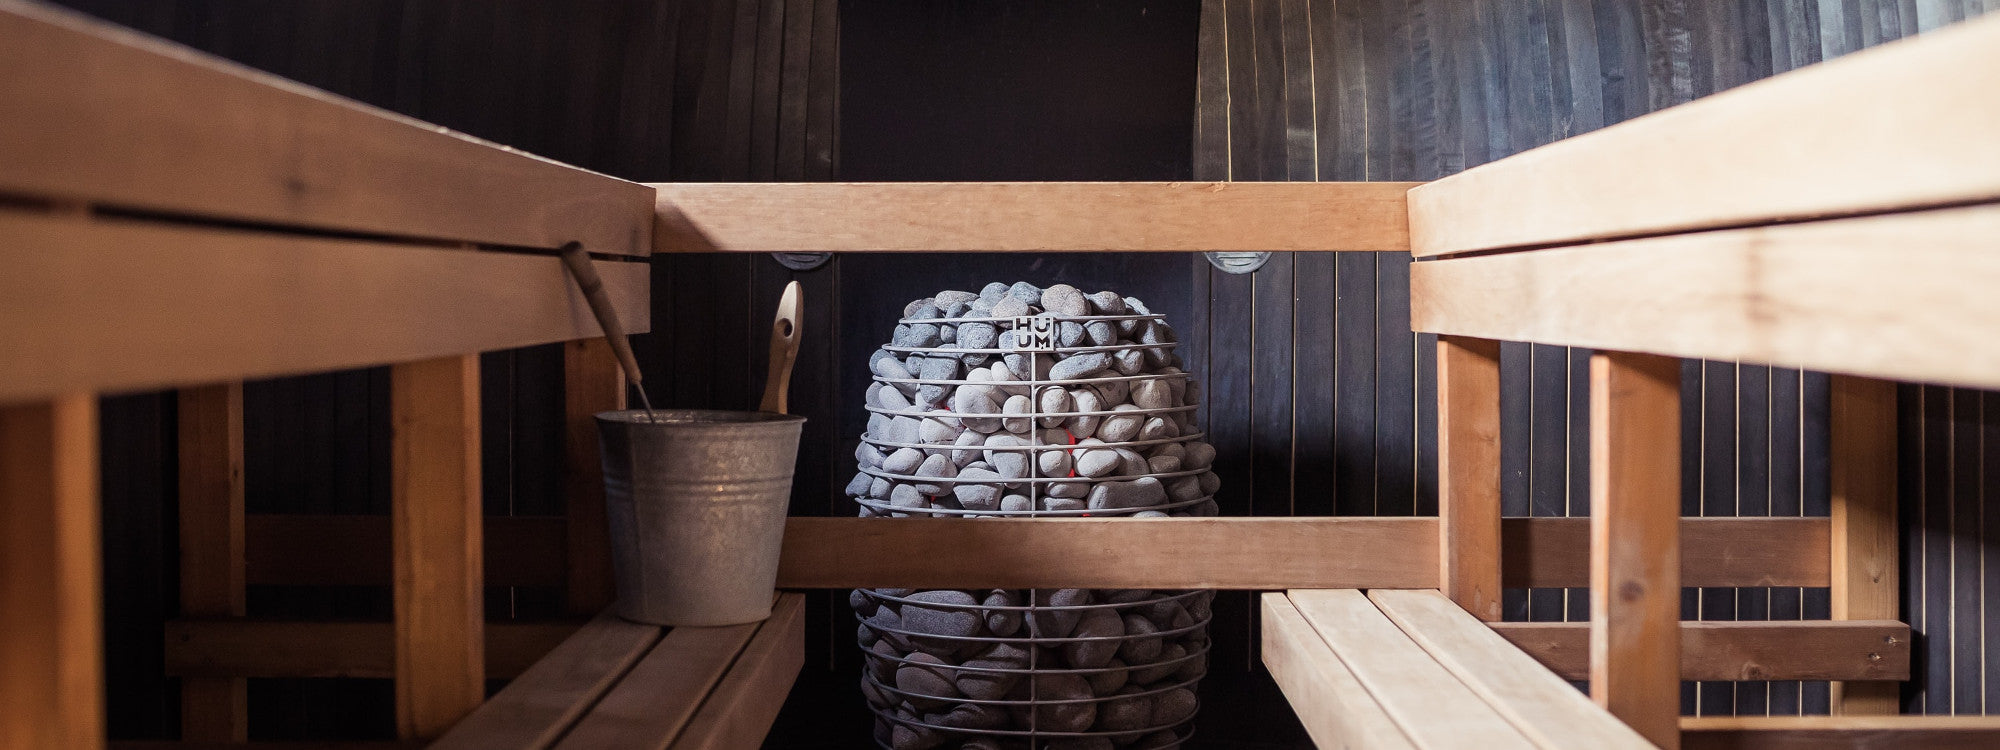 Sauna - a great part of a conscious living lifestyle